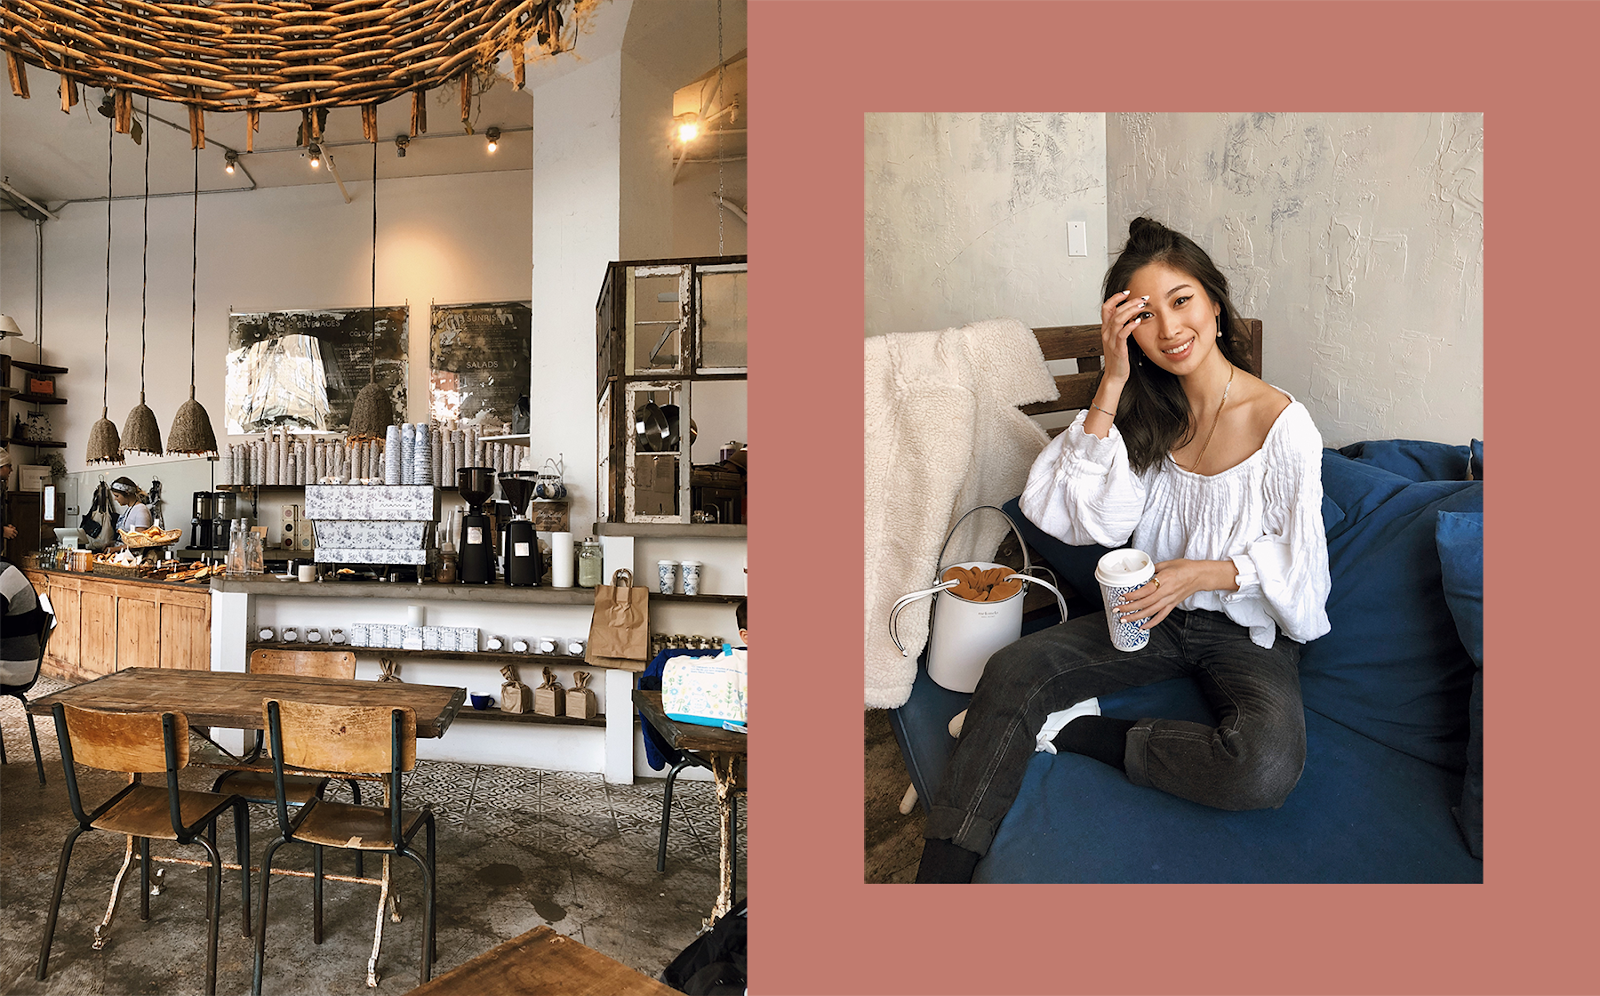 Maman Hudson coffeeshop, cute New York coffee shops, New York personal style blogger, New York City lifestyle - Press to Resume / 012019 - FOREVERVANNY.com